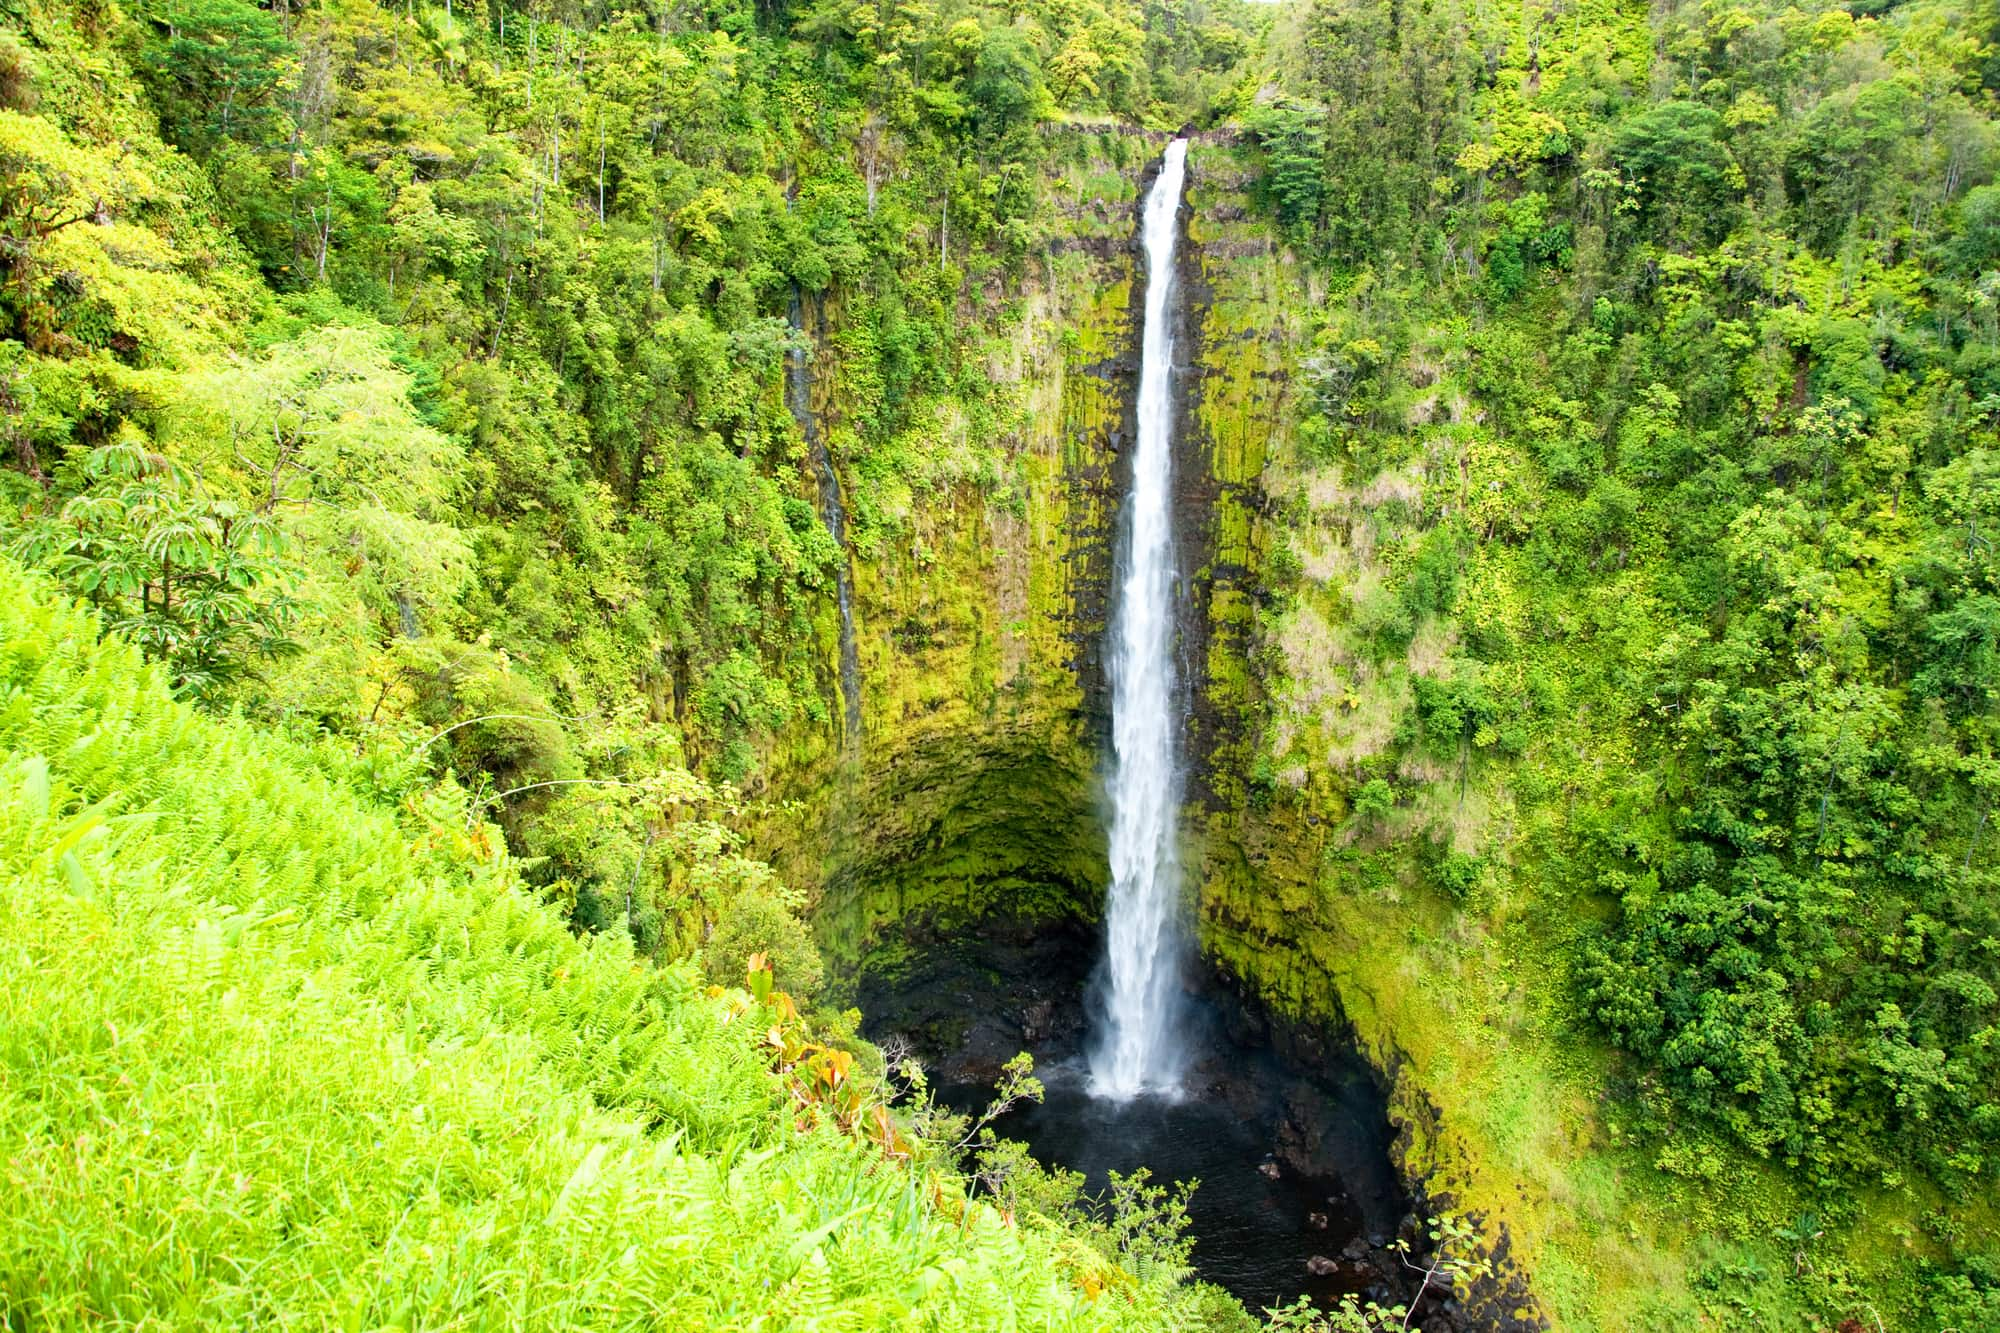 Akaka Falls near Hilo on the Big Island